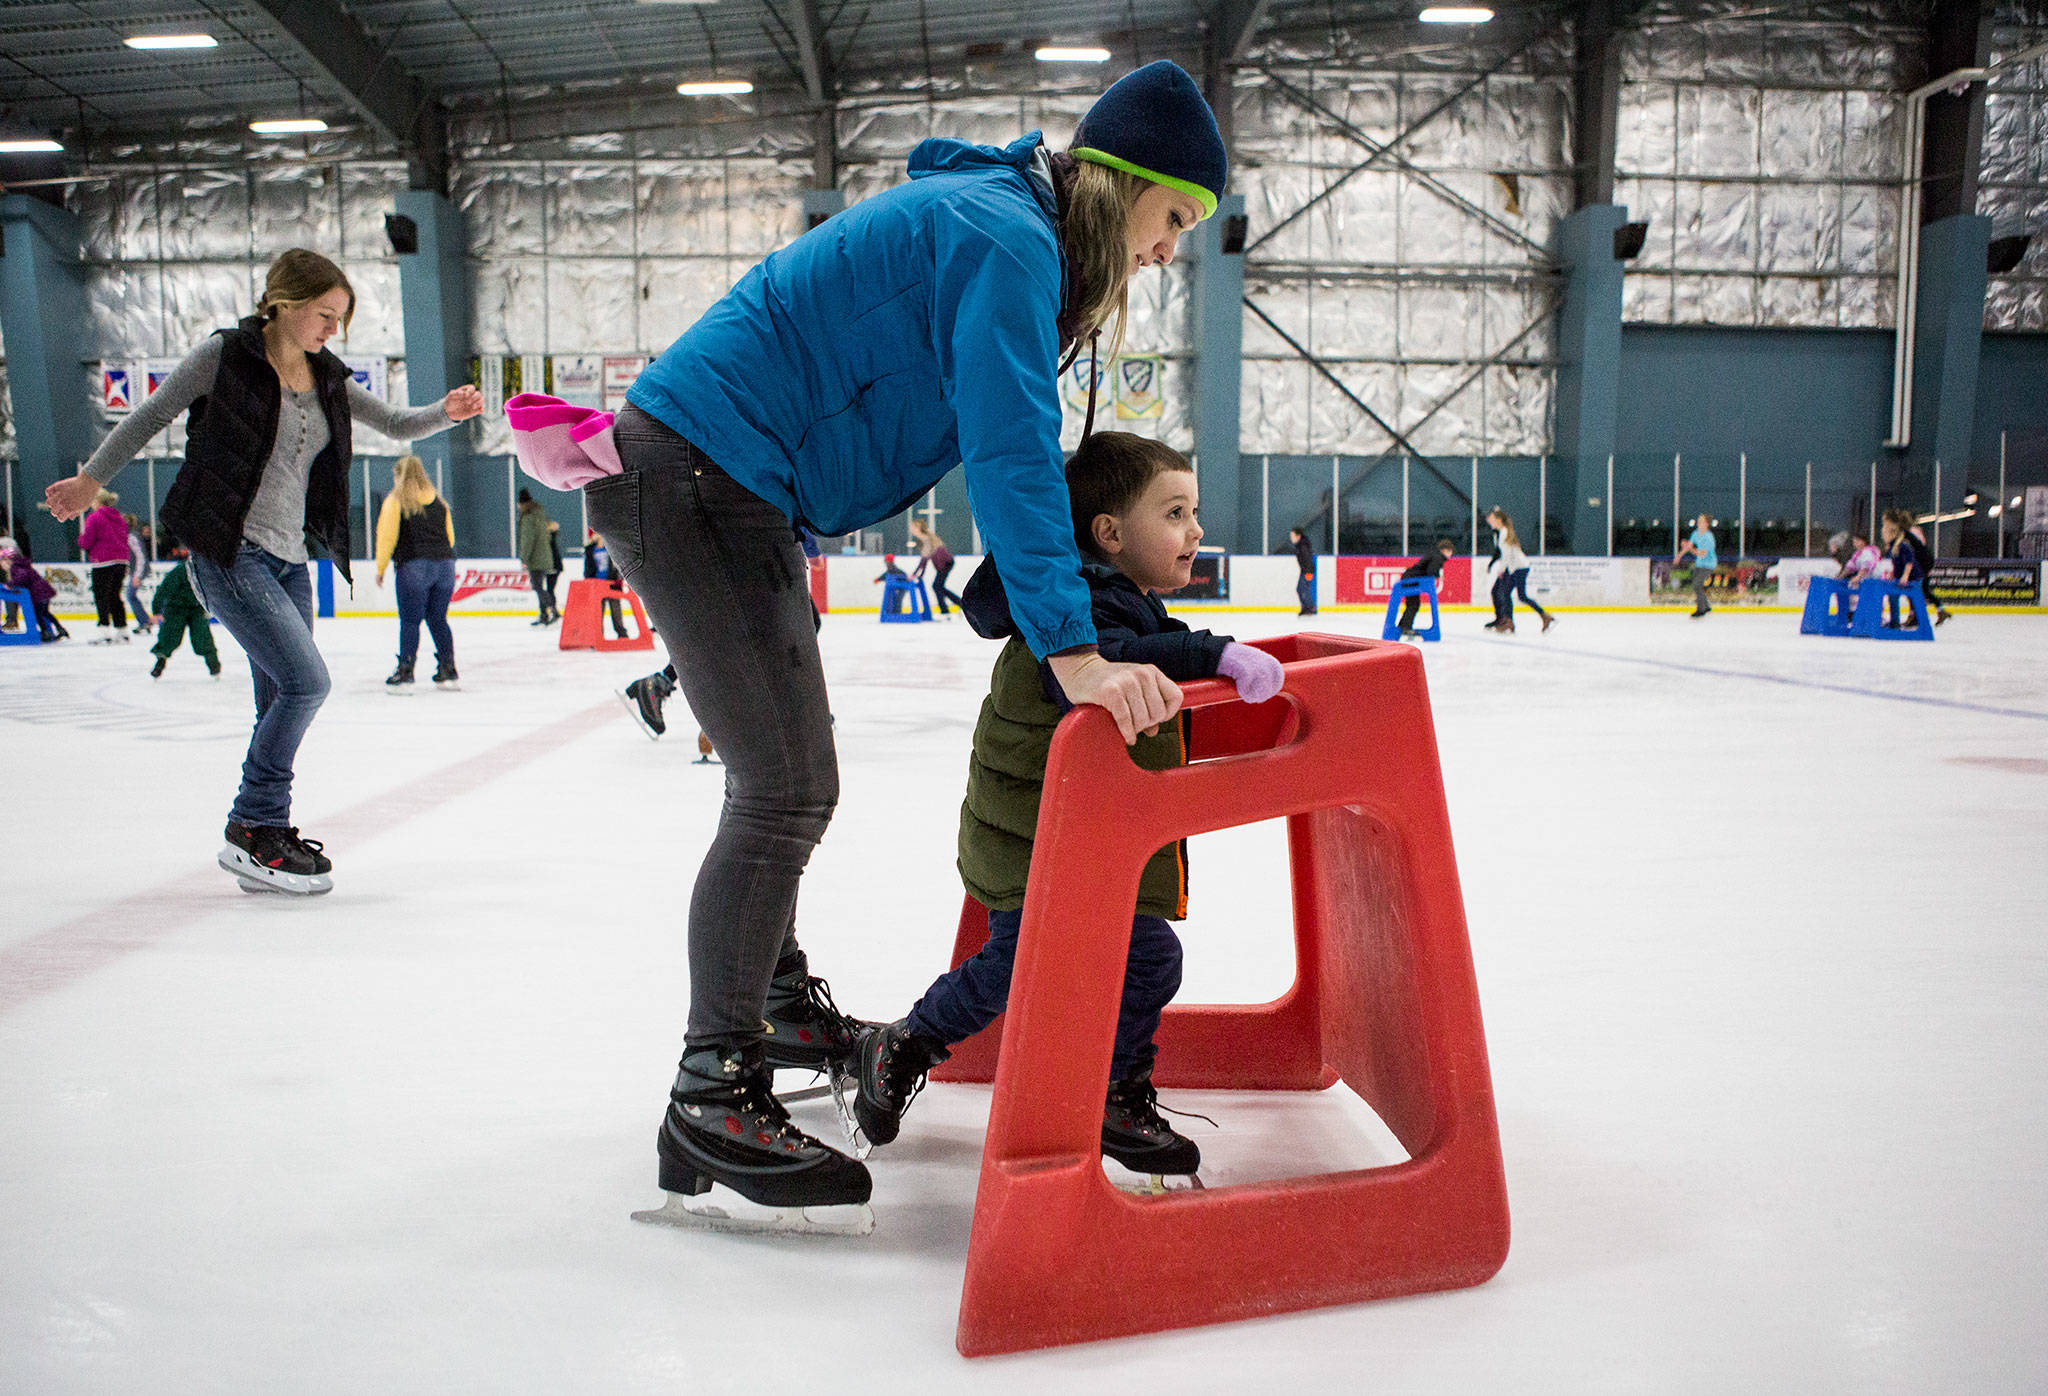 Kellie Alleman helps her son Camden Alleman, 3, as he learns to skate with a walker at the Xfinity Community Ice Rink on Dec. 28 in Everett. (Olivia Vanni / The Herald)